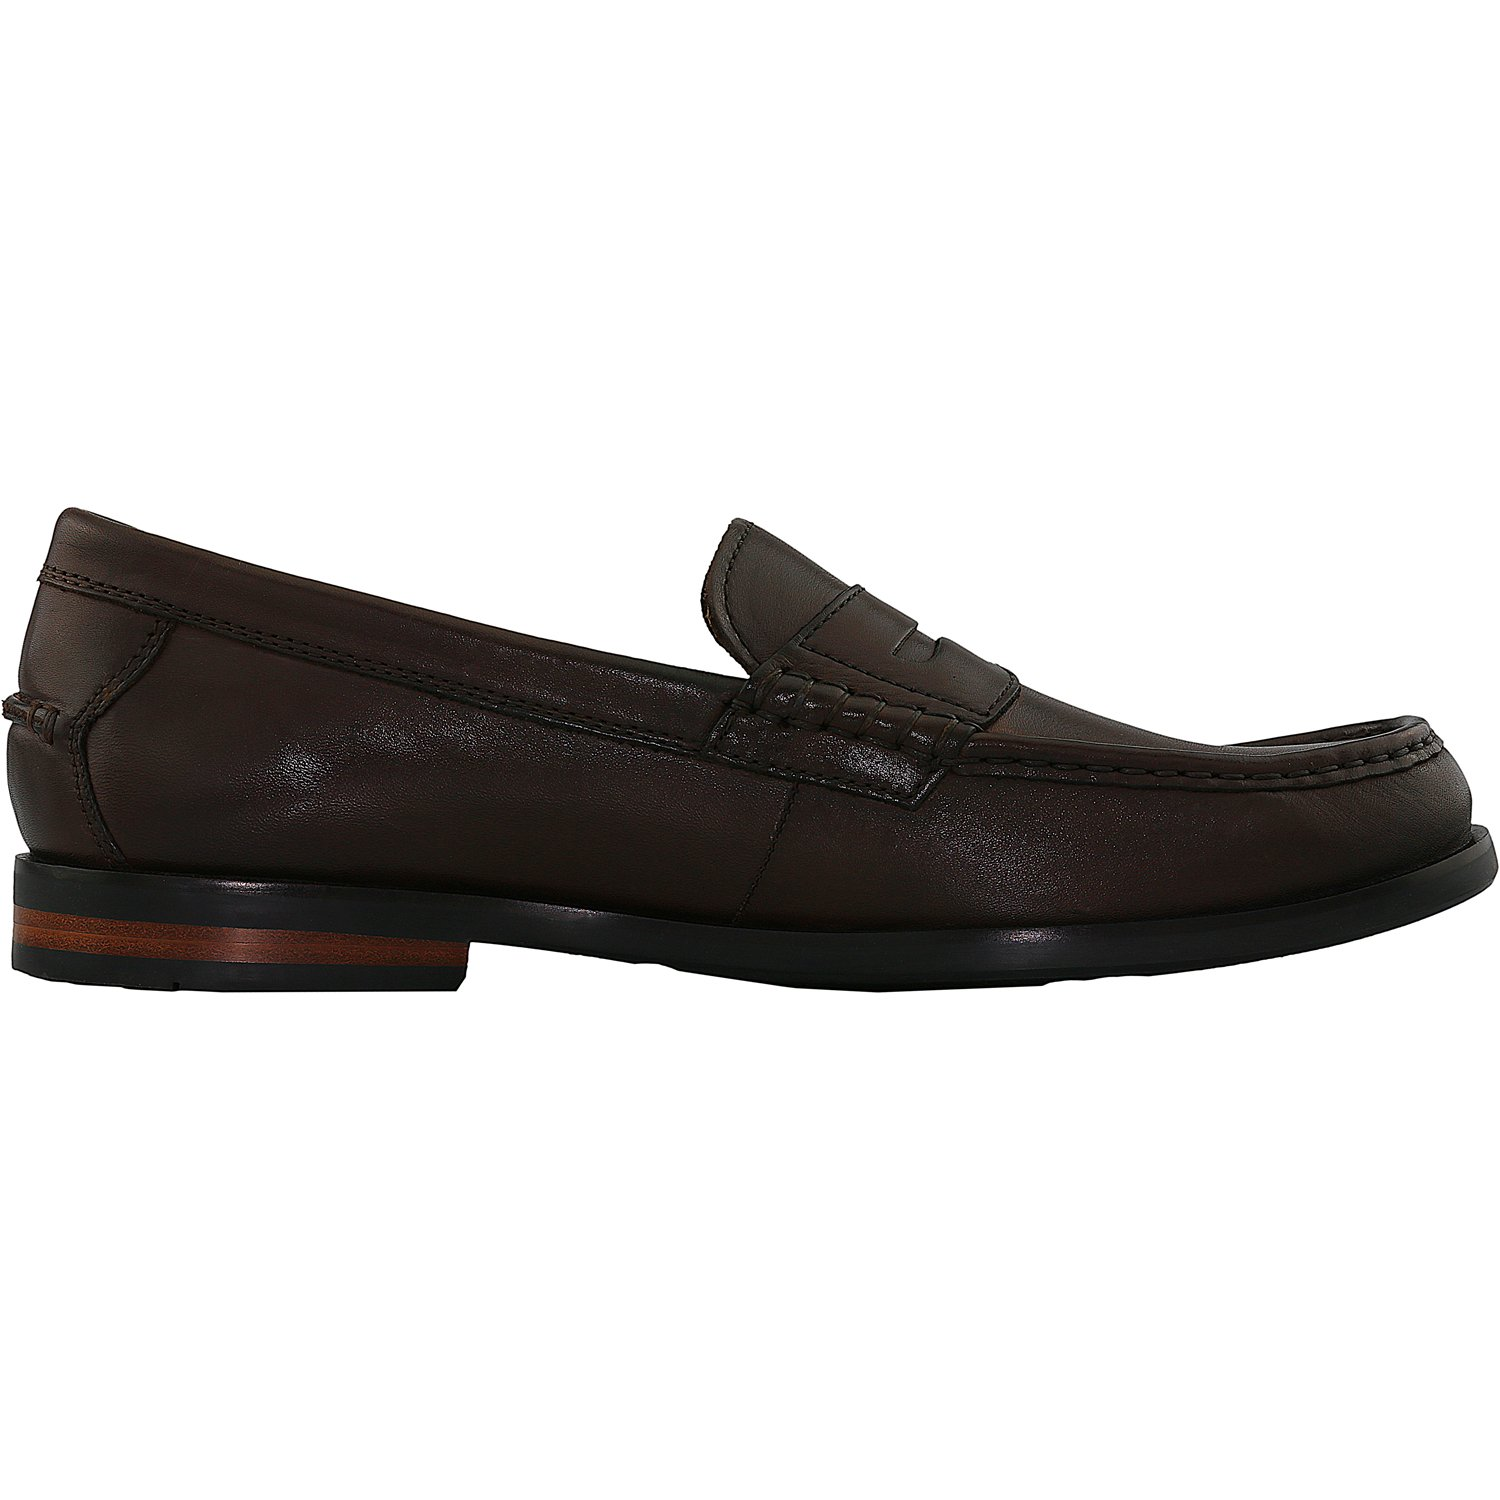 Pinch Friday Leather Moccasins Economical, stylish, and eye-catching shoes